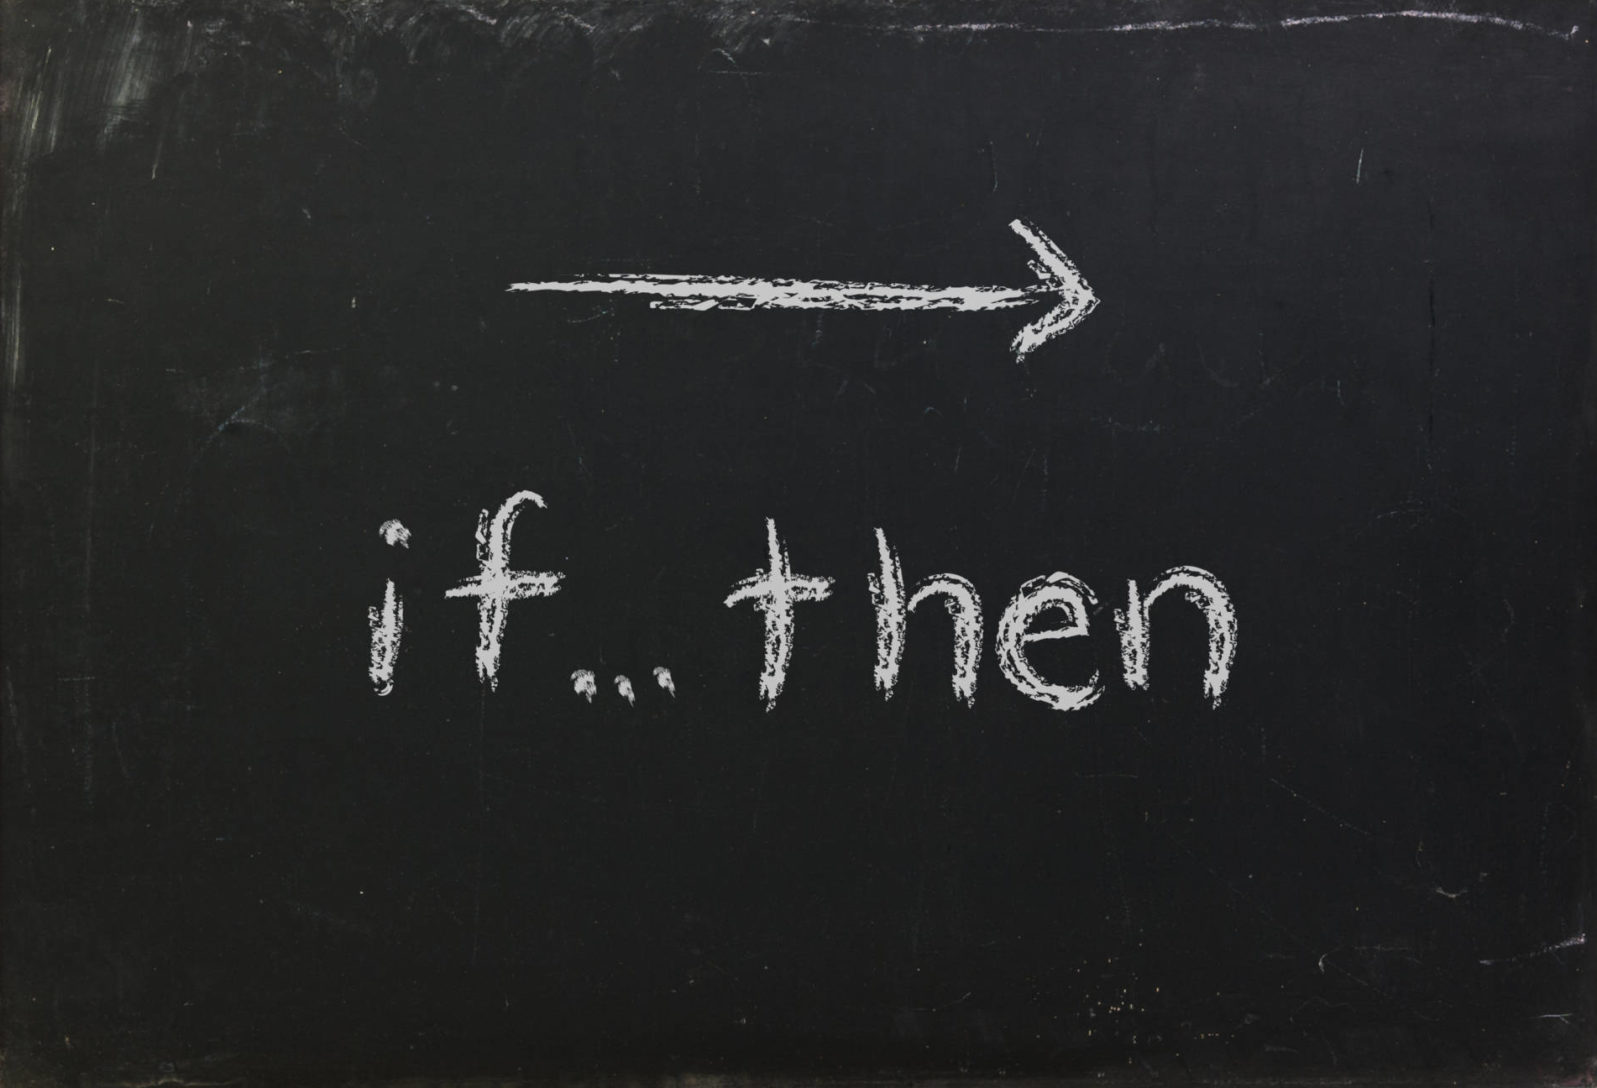 If Then logic statement written in white chalk on a black chalkboard isolated on white